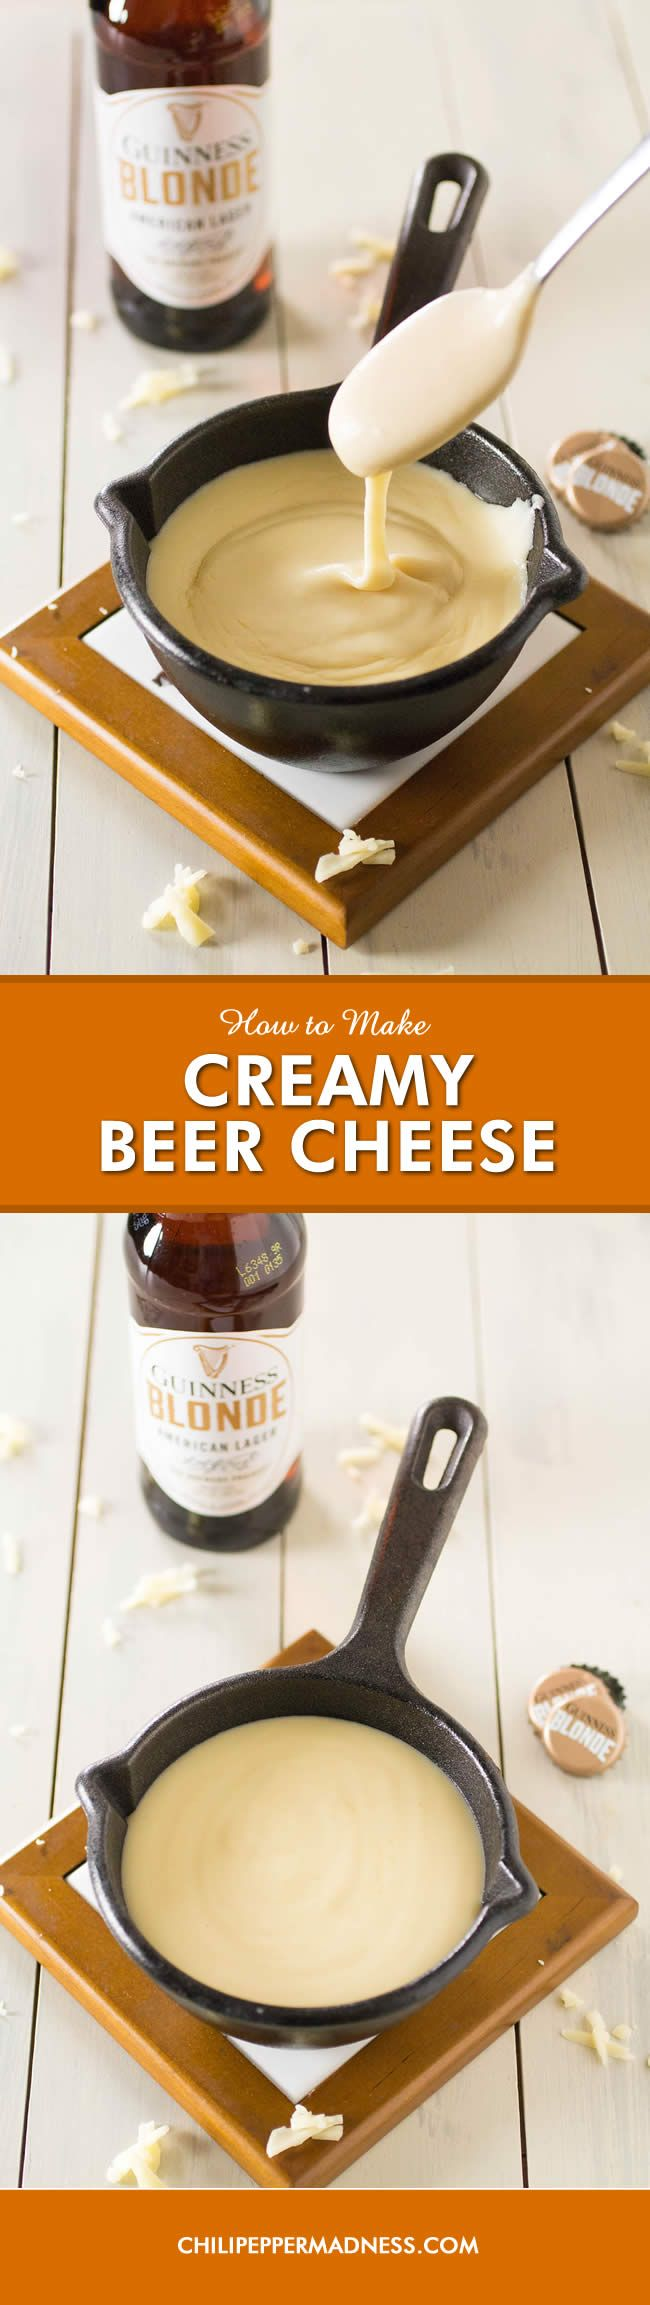 How To Make Creamy Beer Cheese